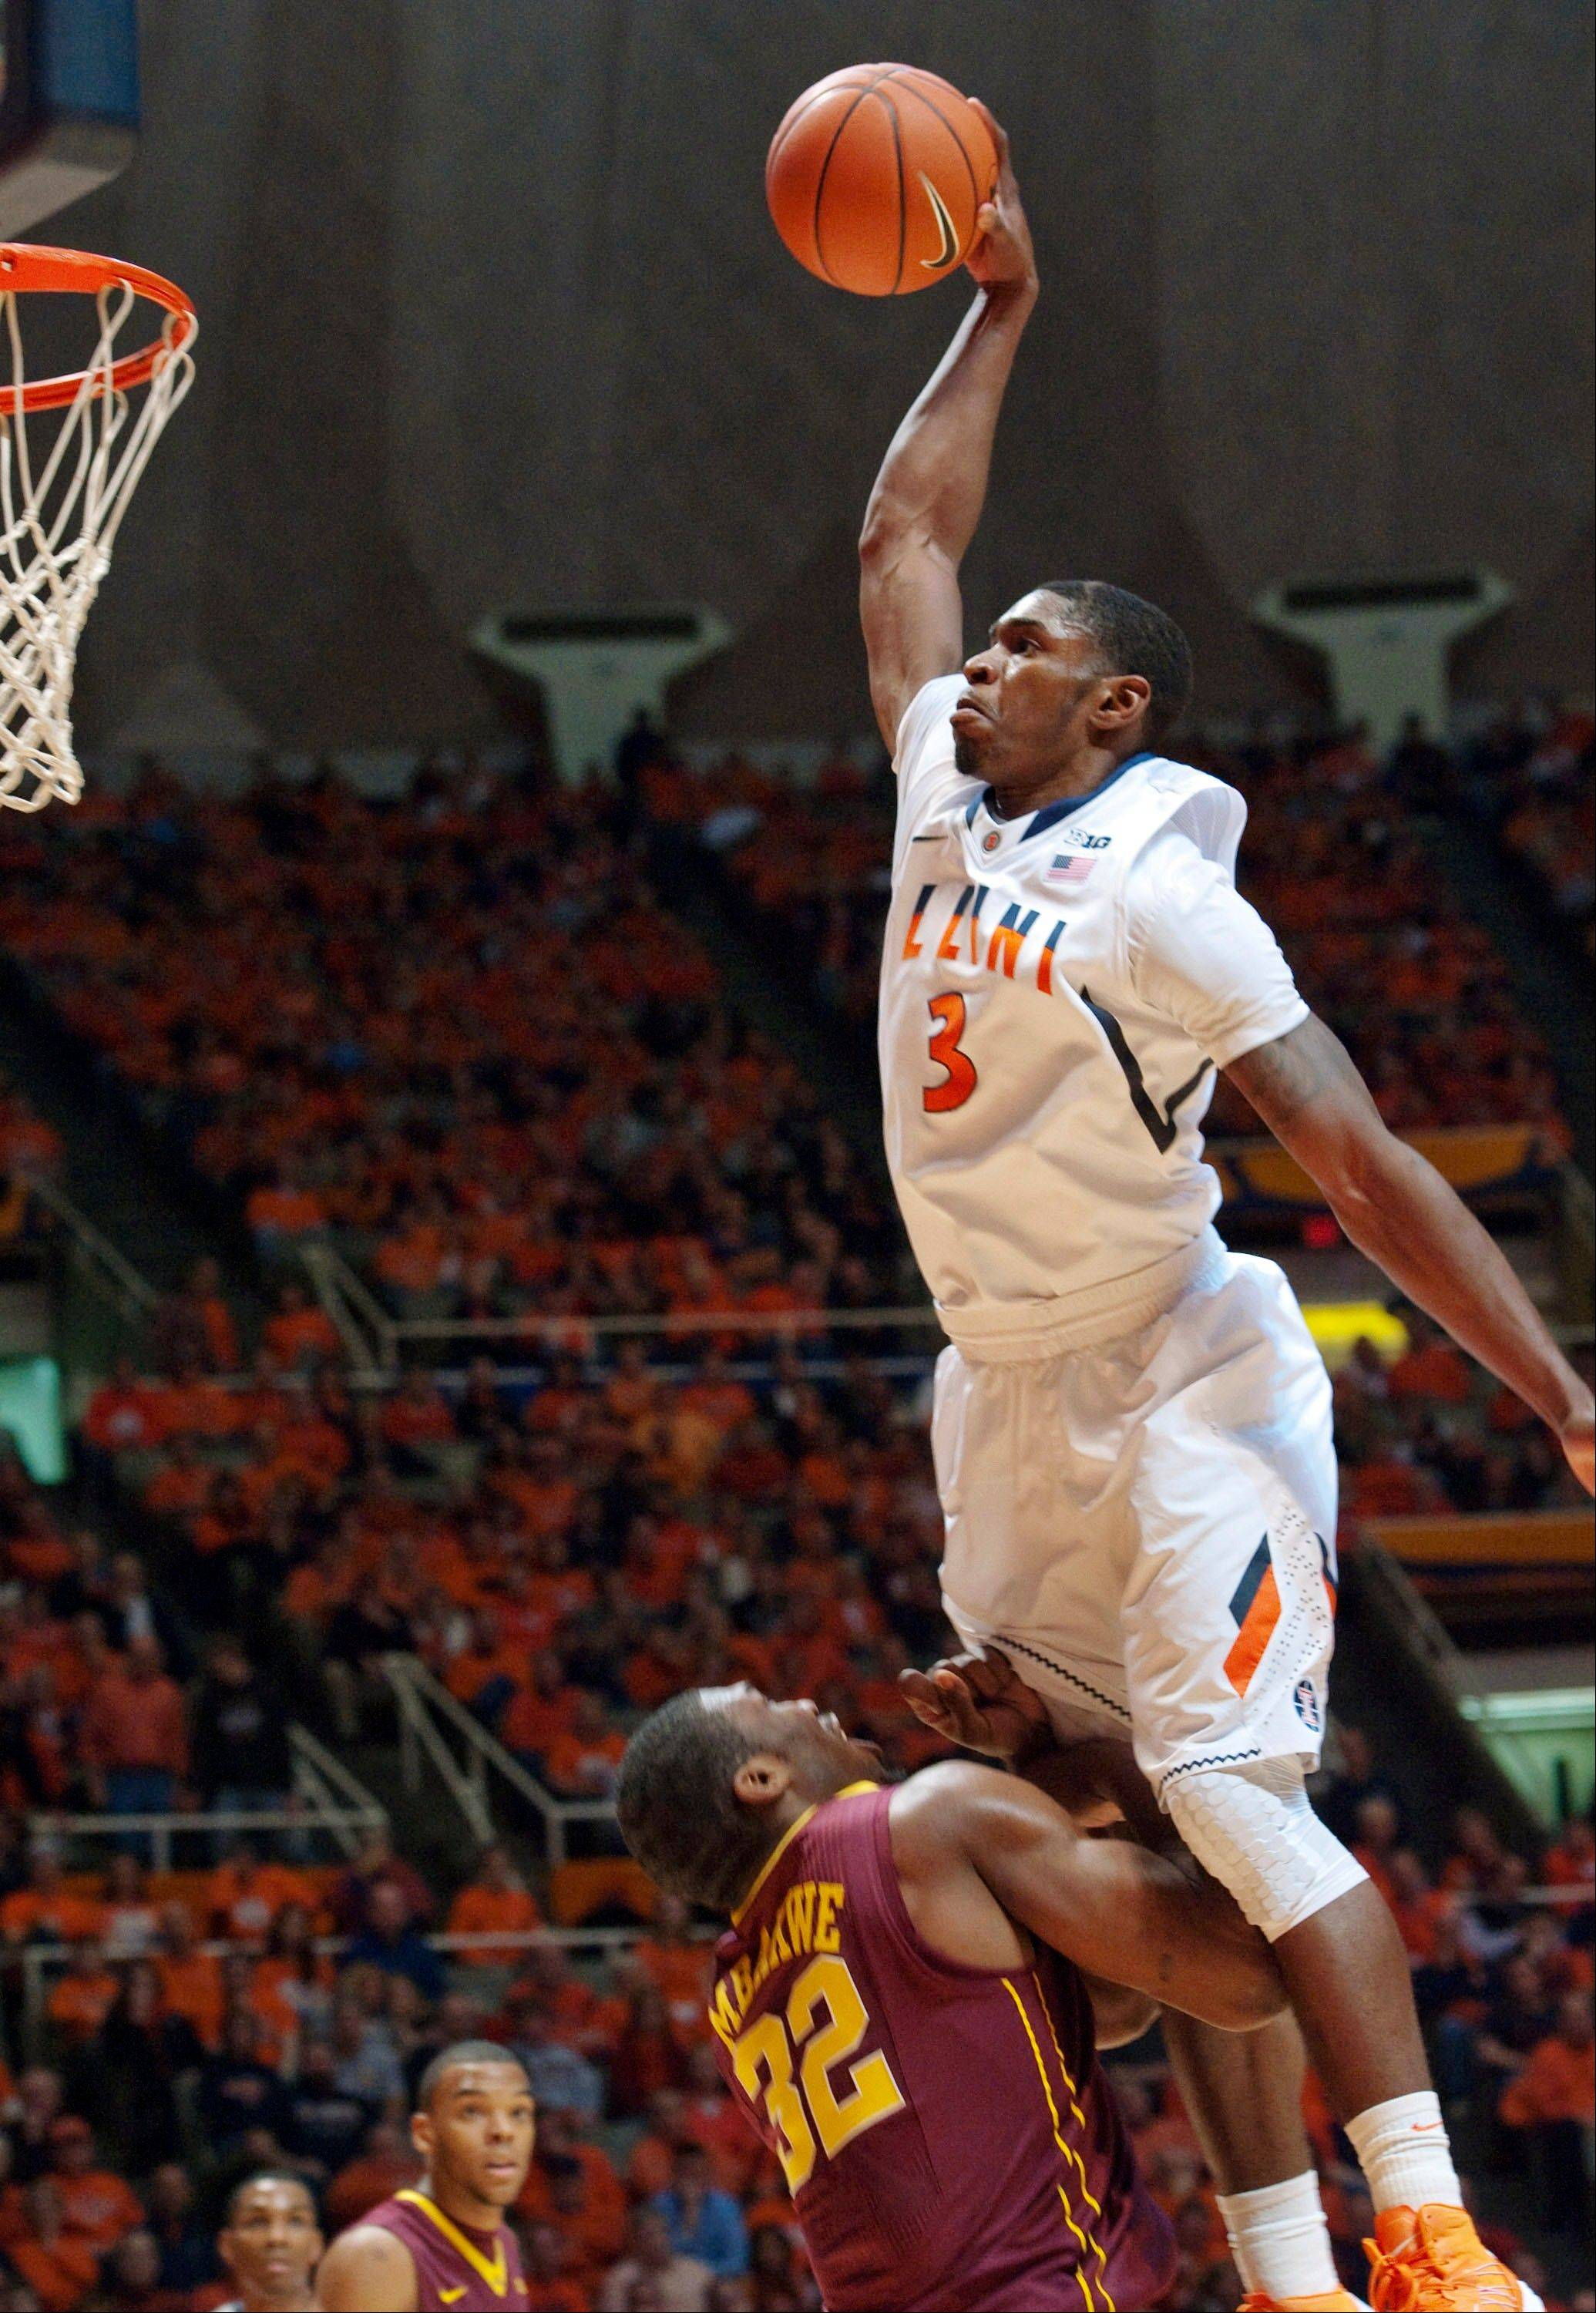 Illinois' Brandon Paul (3) elevates to the basket against Minnesota's Trevor Mbakwe (32) during the first half of their NCAA college basketball game, Wednesday, Jan. 9, 2013, in Champaign.